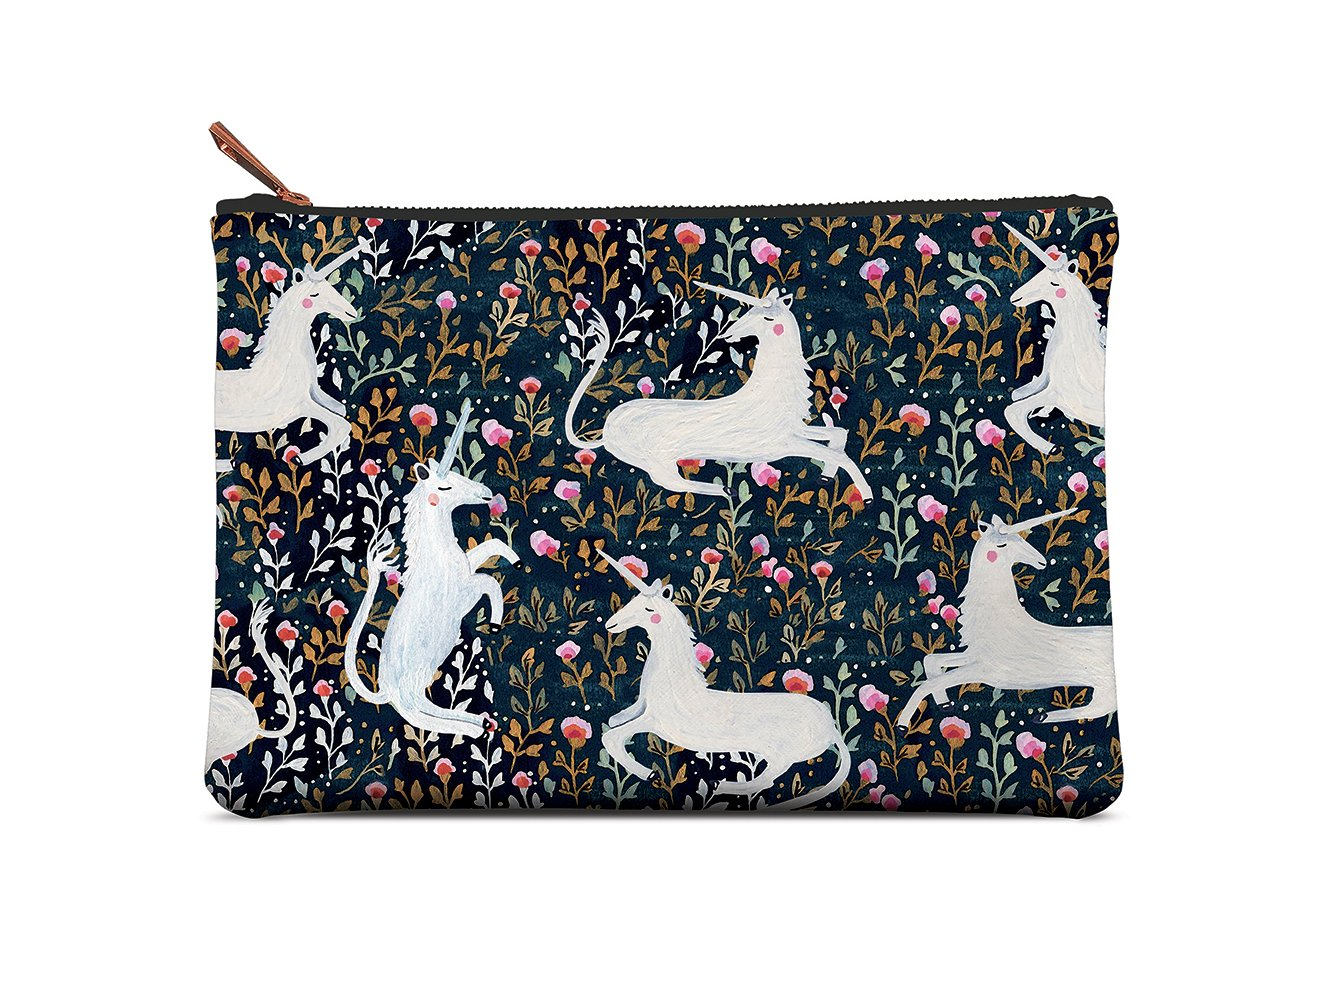 Studio Oh! - UNICORN Stay Magical Zippered Pouch